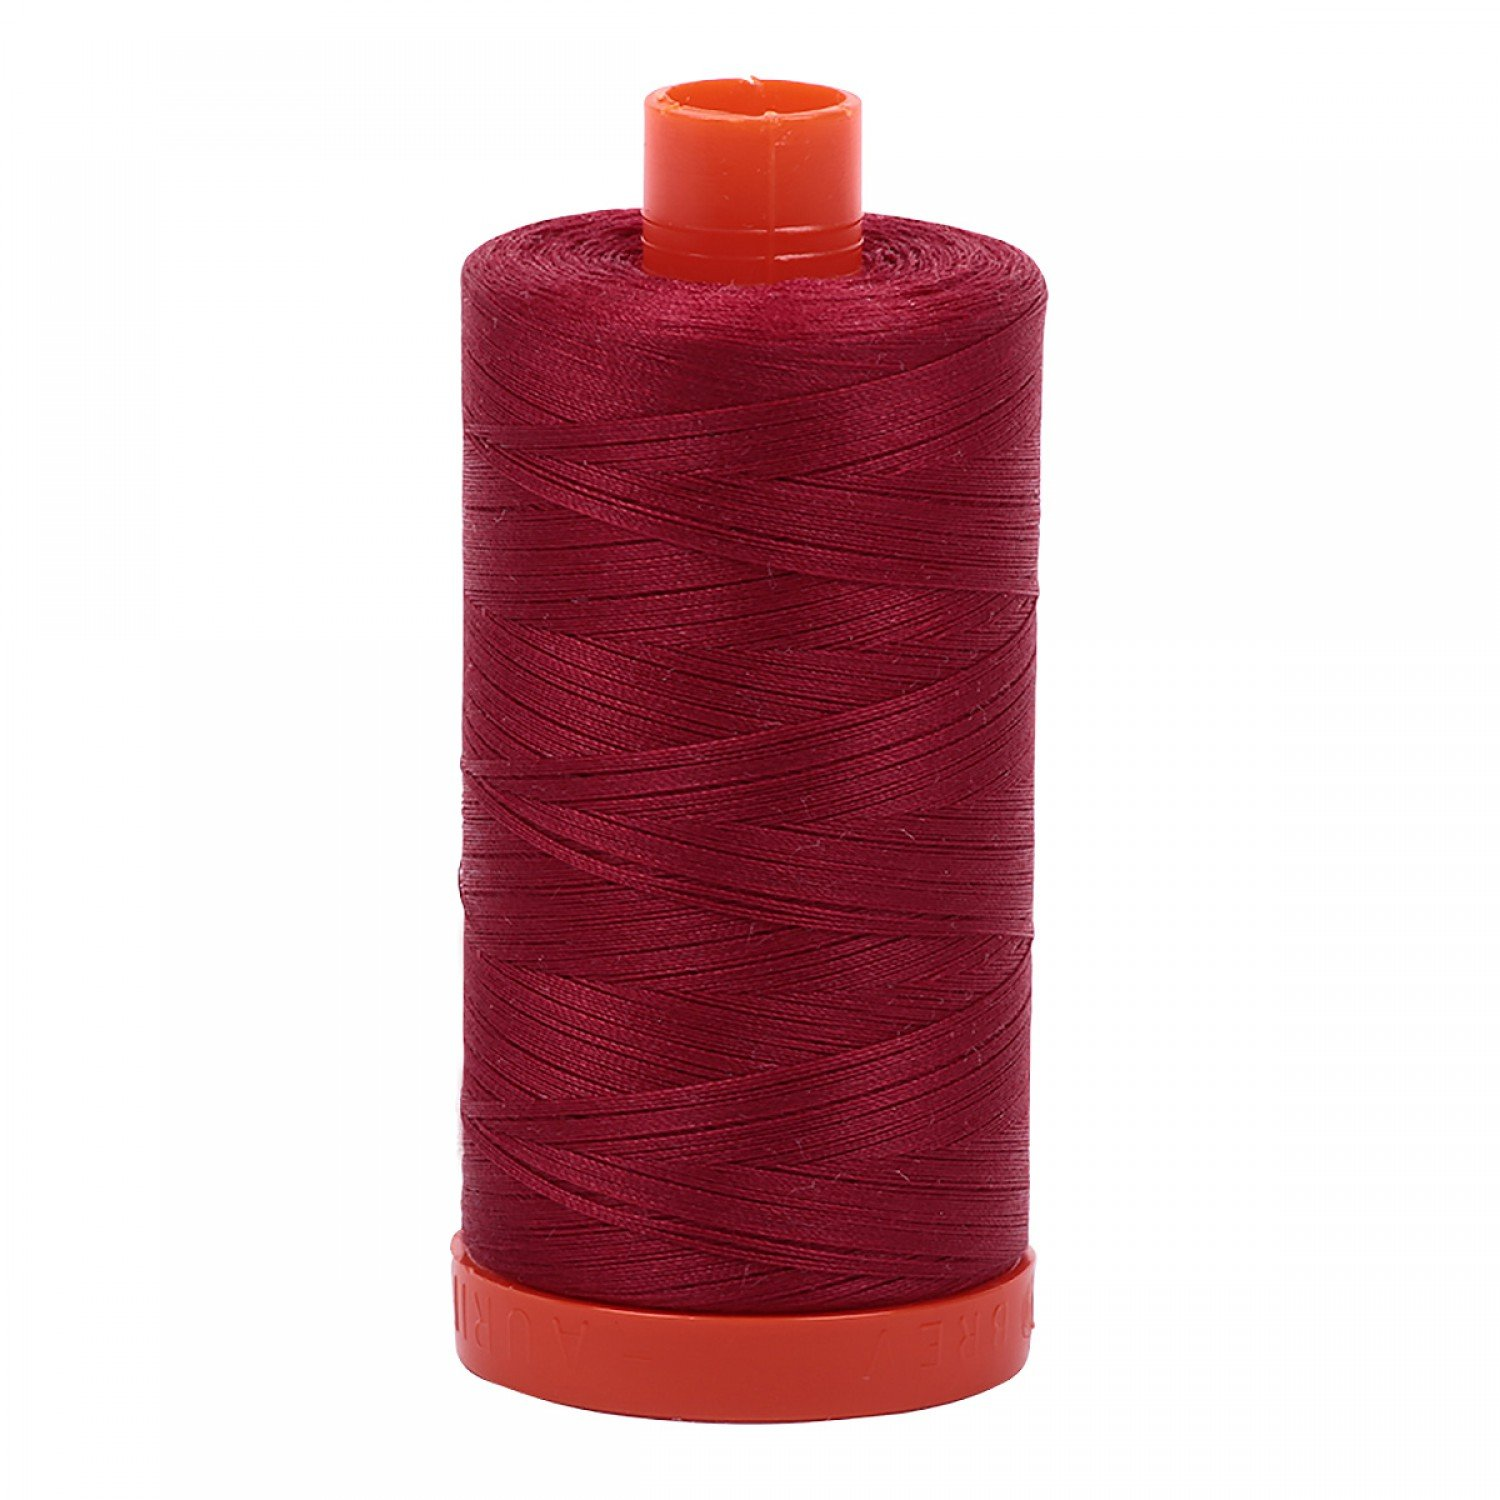 Aurifil Cotton Mako Thread 50wt 1300m 1103 Burgundy